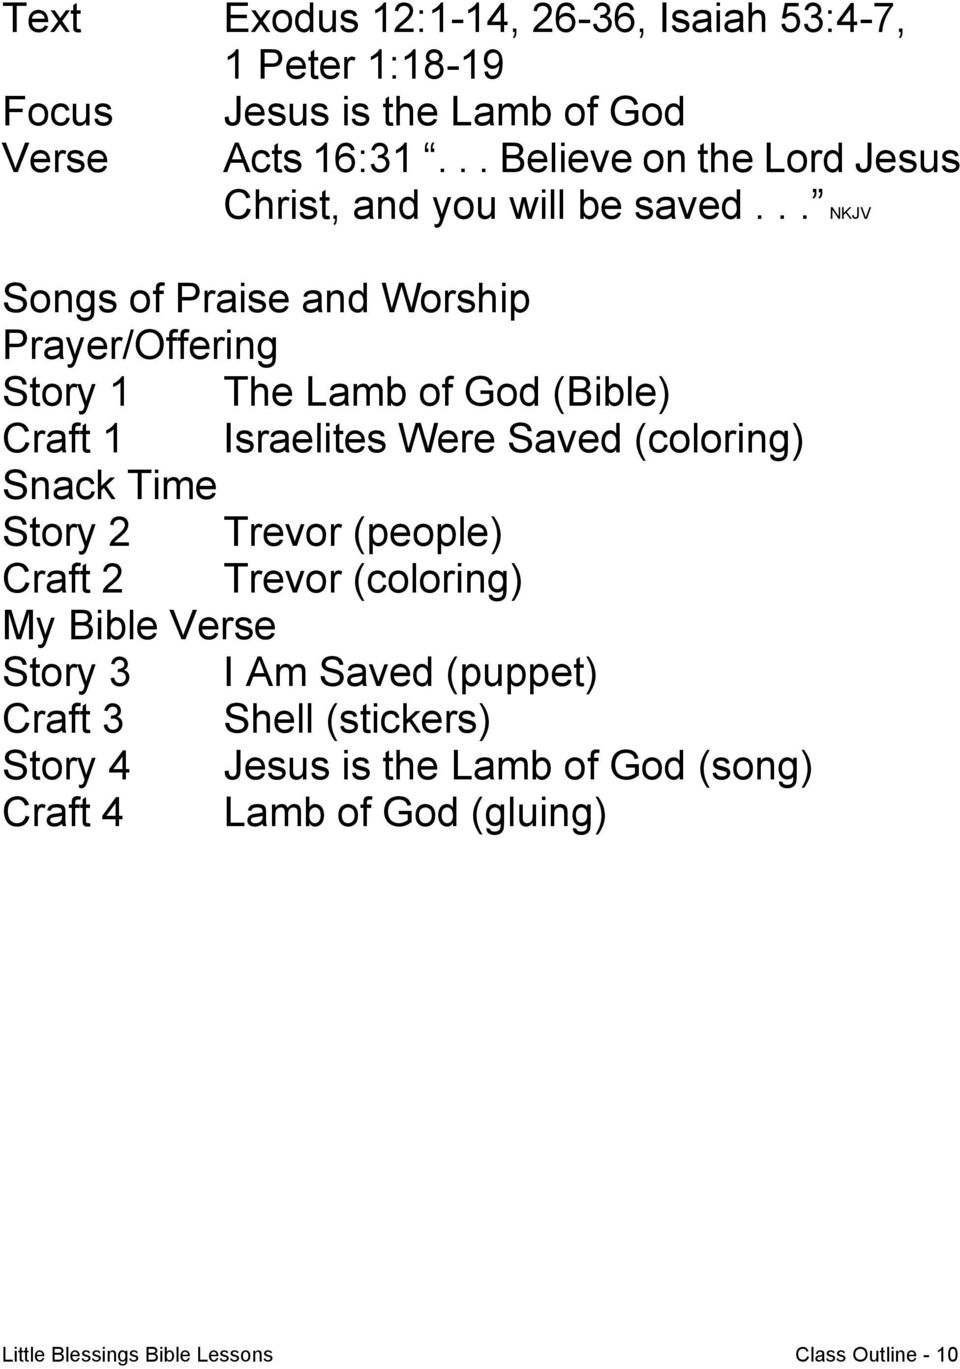 .. NKJV Songs of Praise and Worship Prayer/Offering Story 1 The Lamb of God (Bible) Craft 1 Israelites Were Saved (coloring) Snack